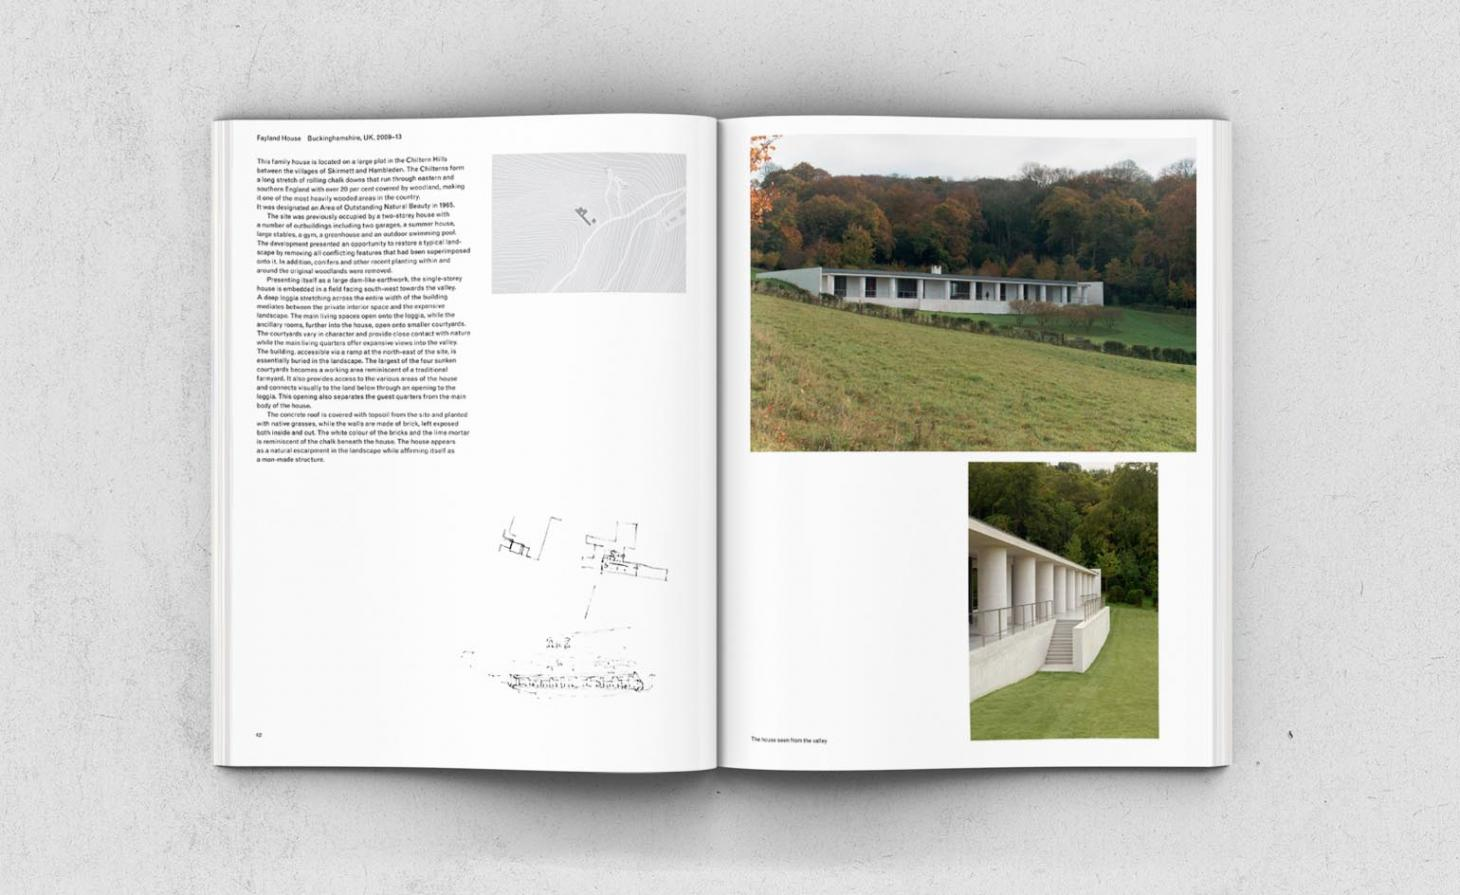 David Chipperfield monograph designed by John Morgan Studio